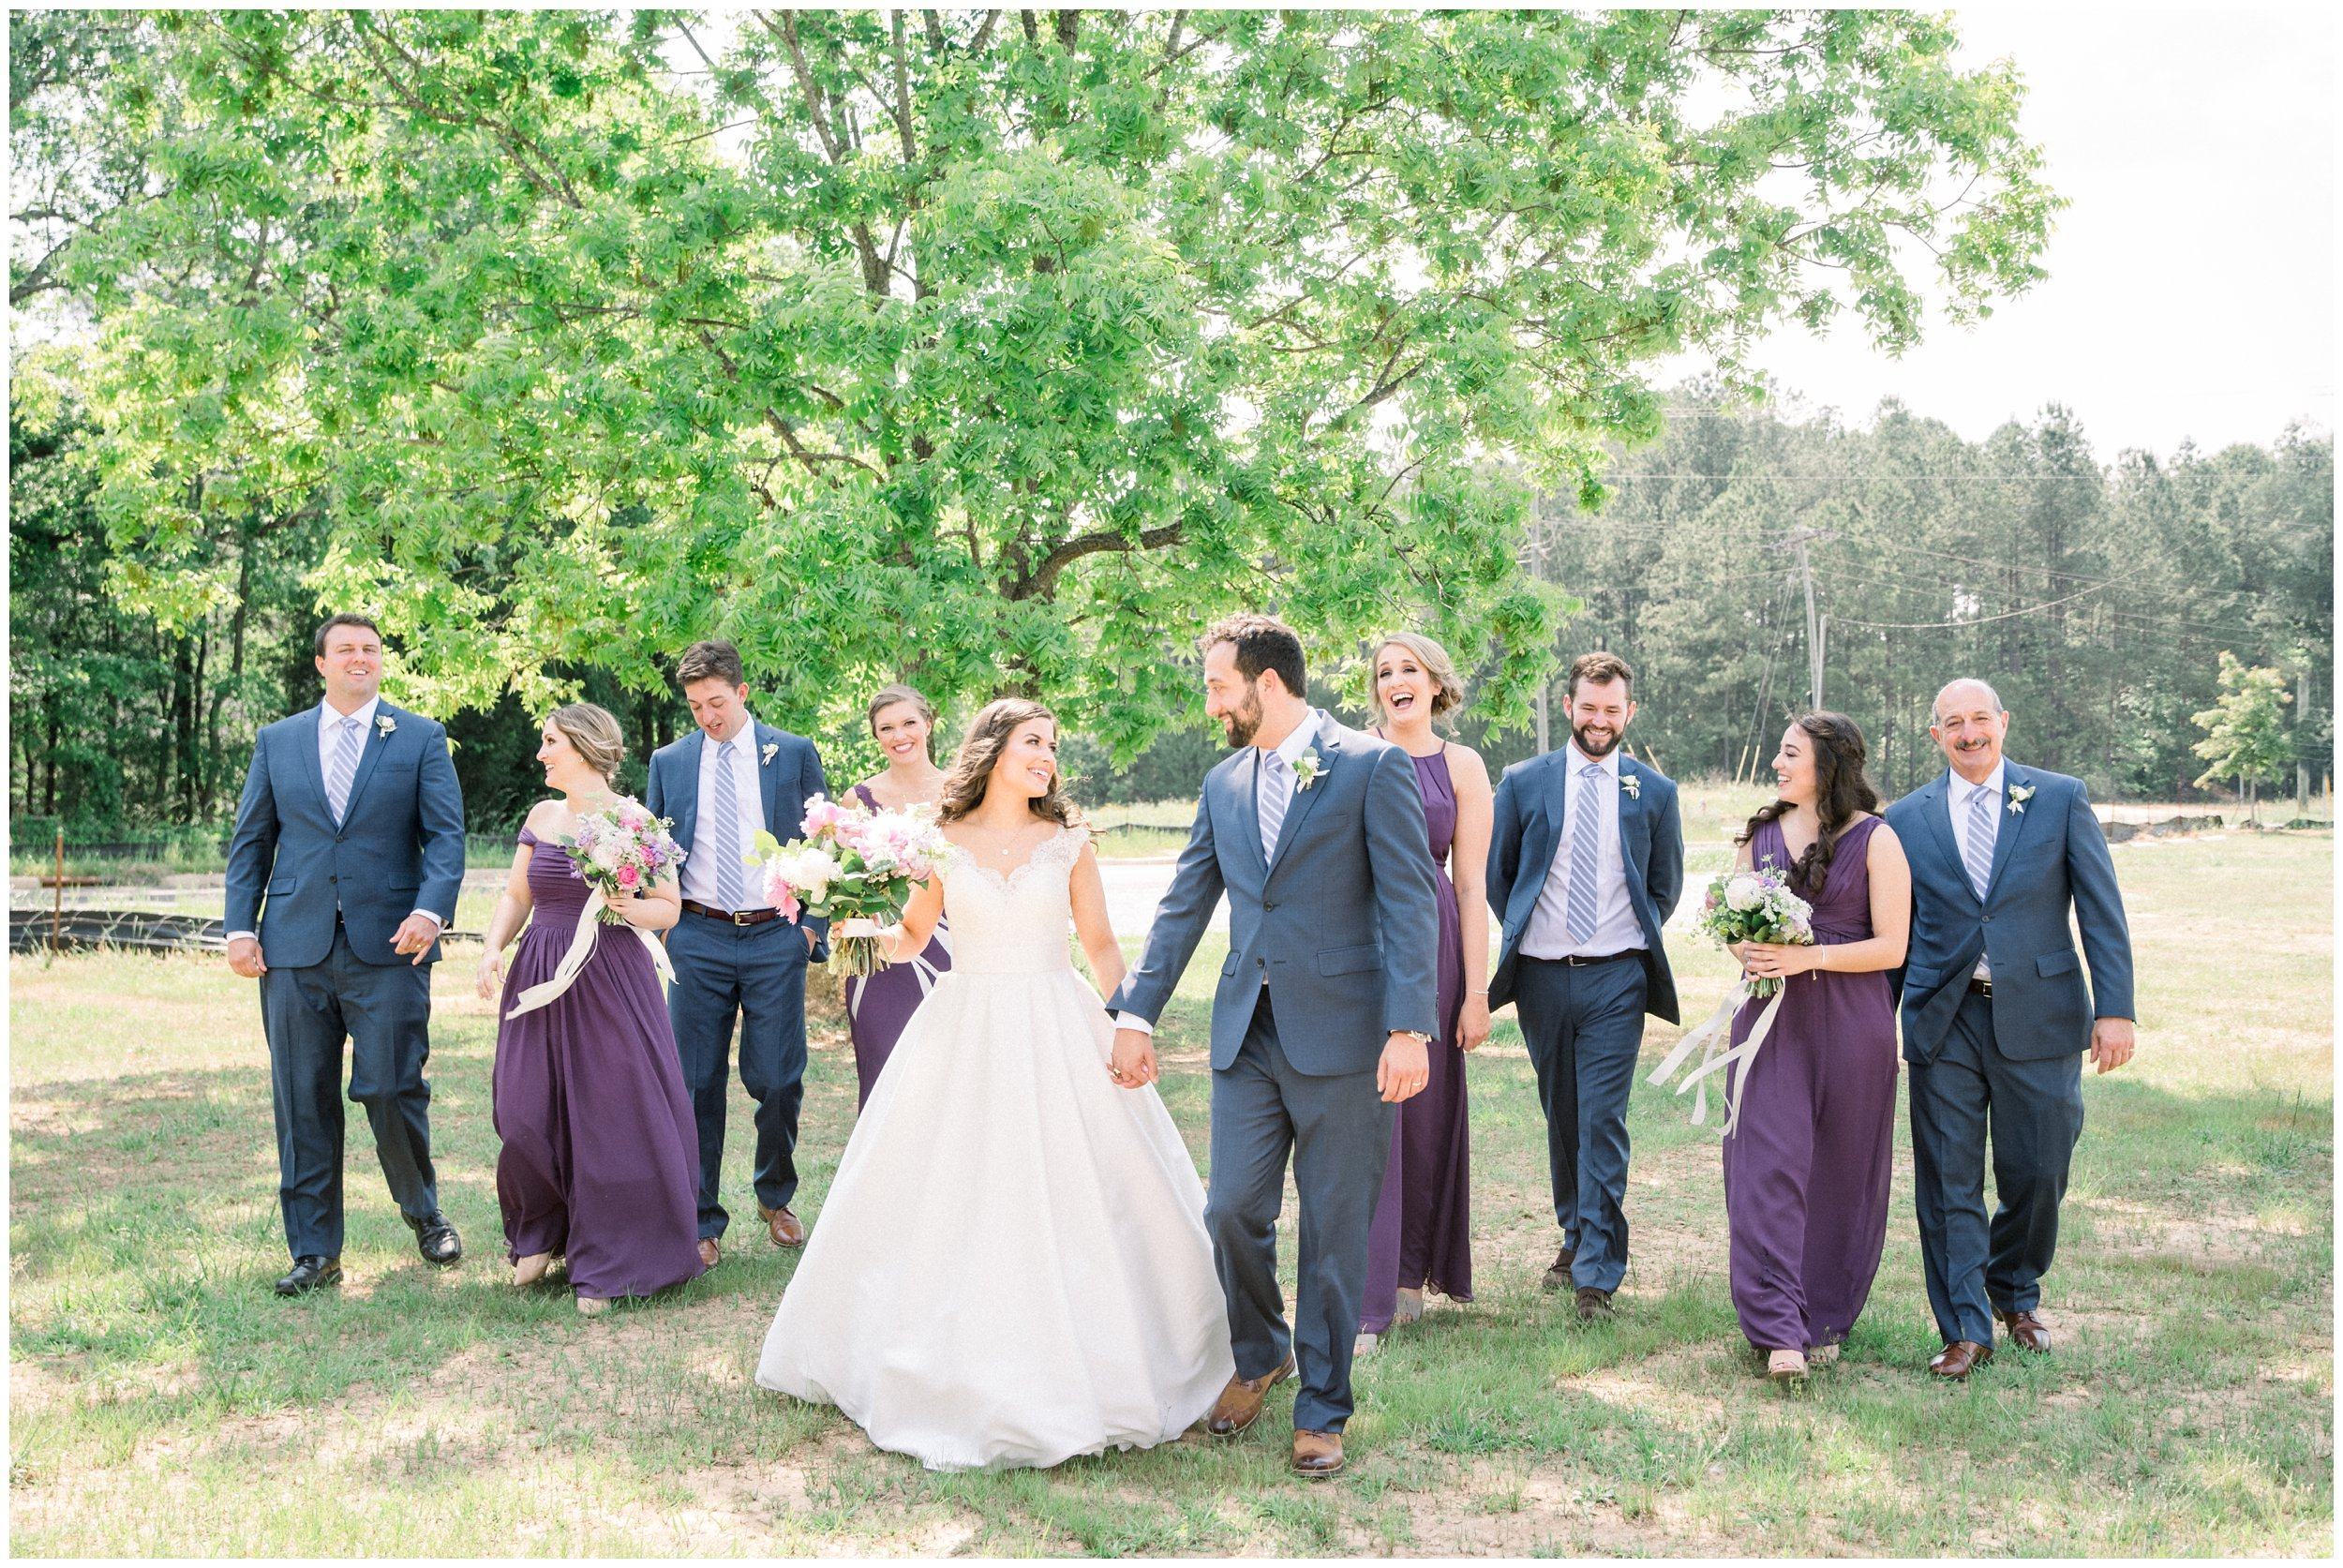 wedding party walking with newlyweds laughing